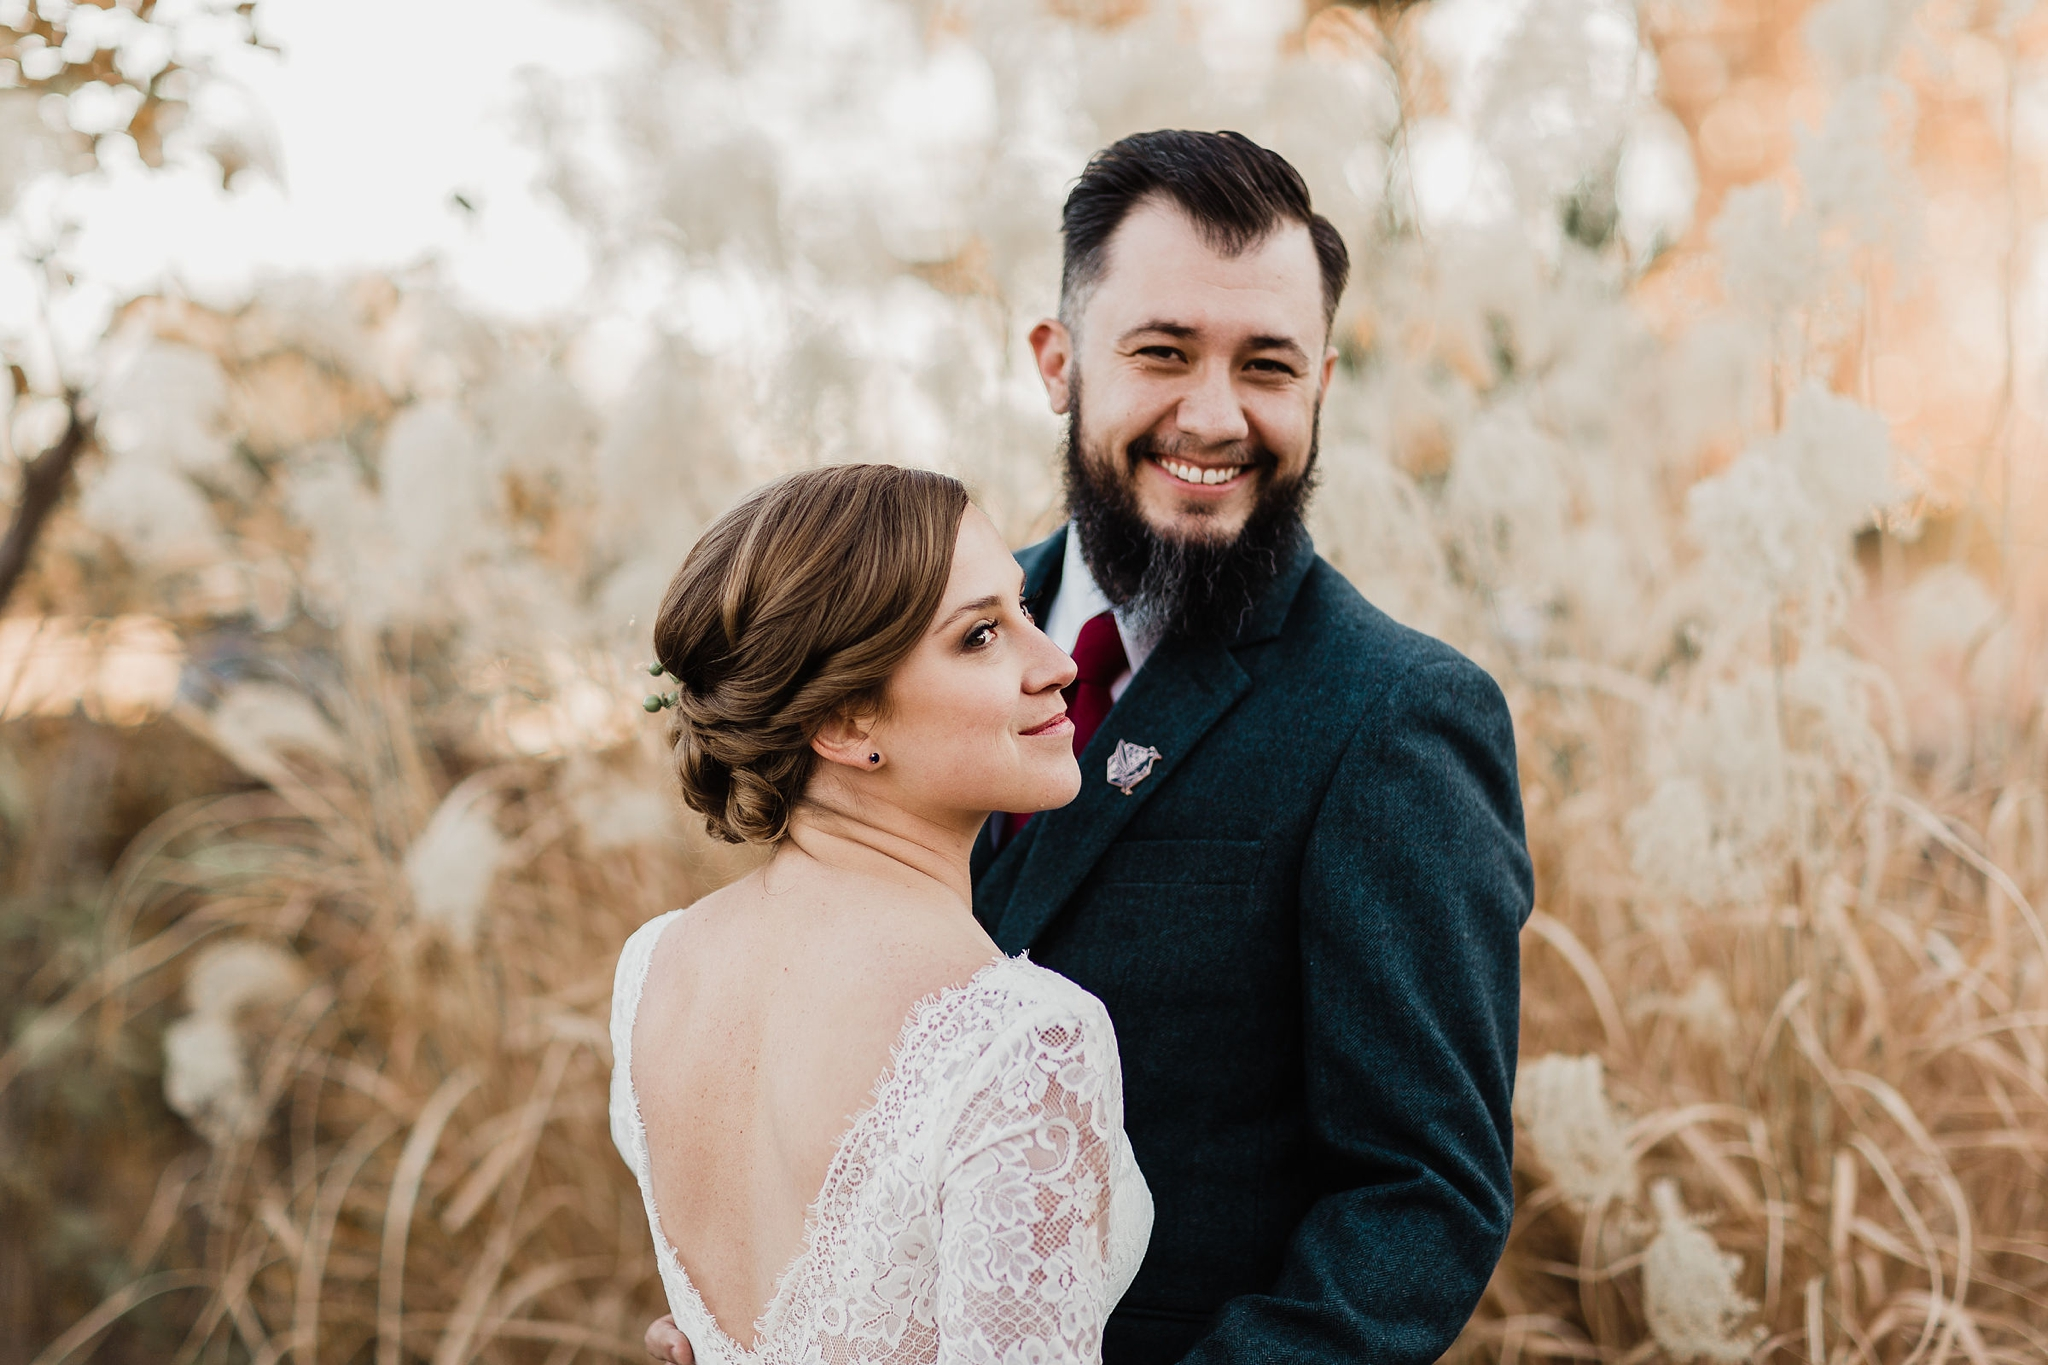 Alicia+lucia+photography+-+albuquerque+wedding+photographer+-+santa+fe+wedding+photography+-+new+mexico+wedding+photographer+-+new+mexico+wedding+-+wedding+makeup+-+makeup+artist+-+wedding+makeup+artist+-+bridal+makeup_0004.jpg